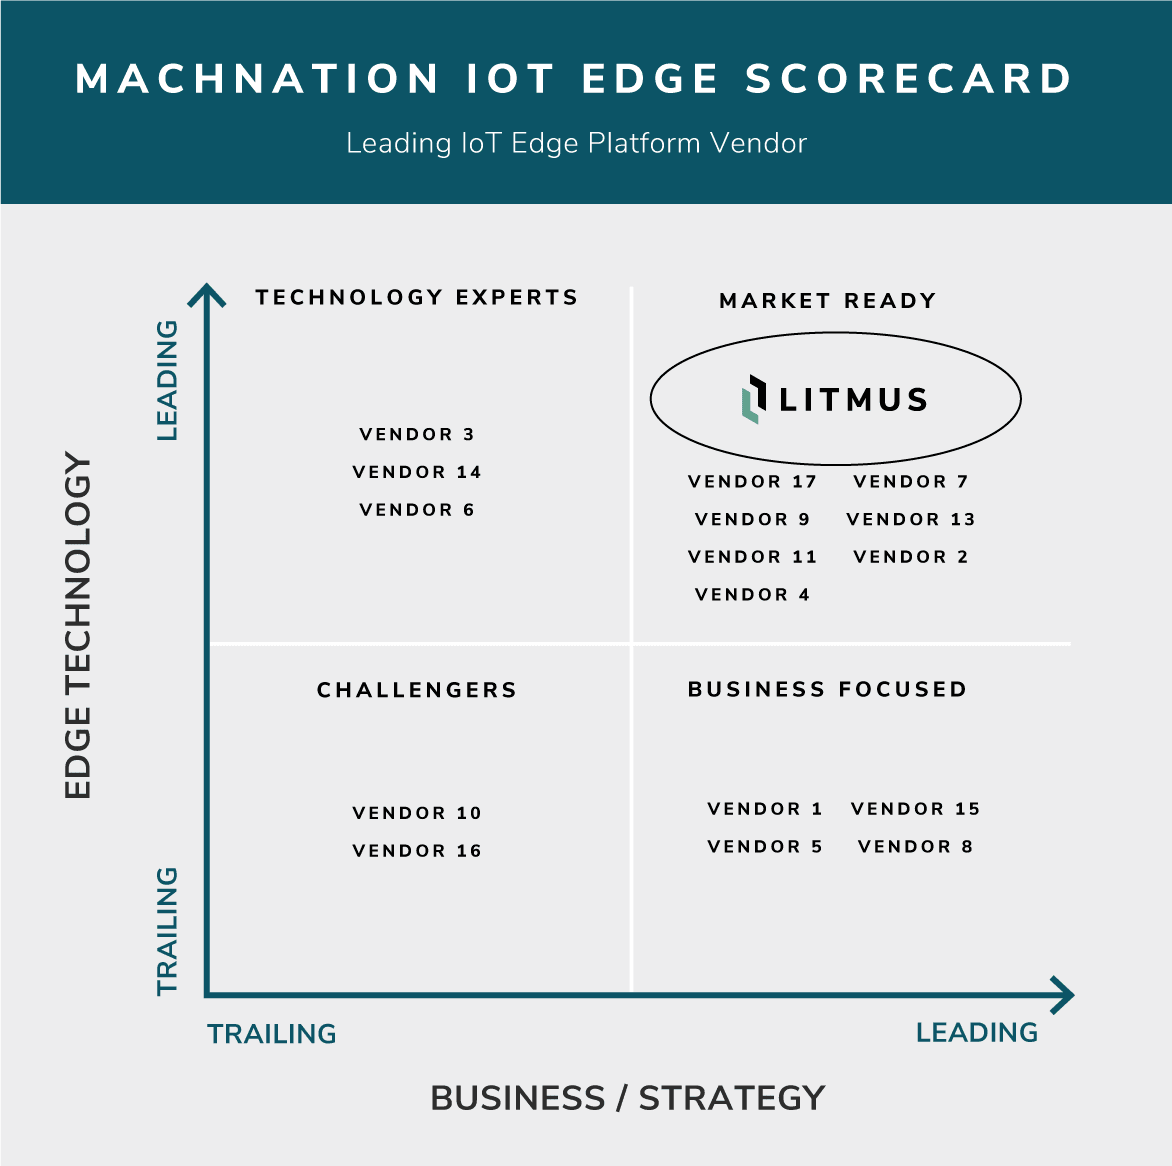 MachNation IoT Edge Scorecard